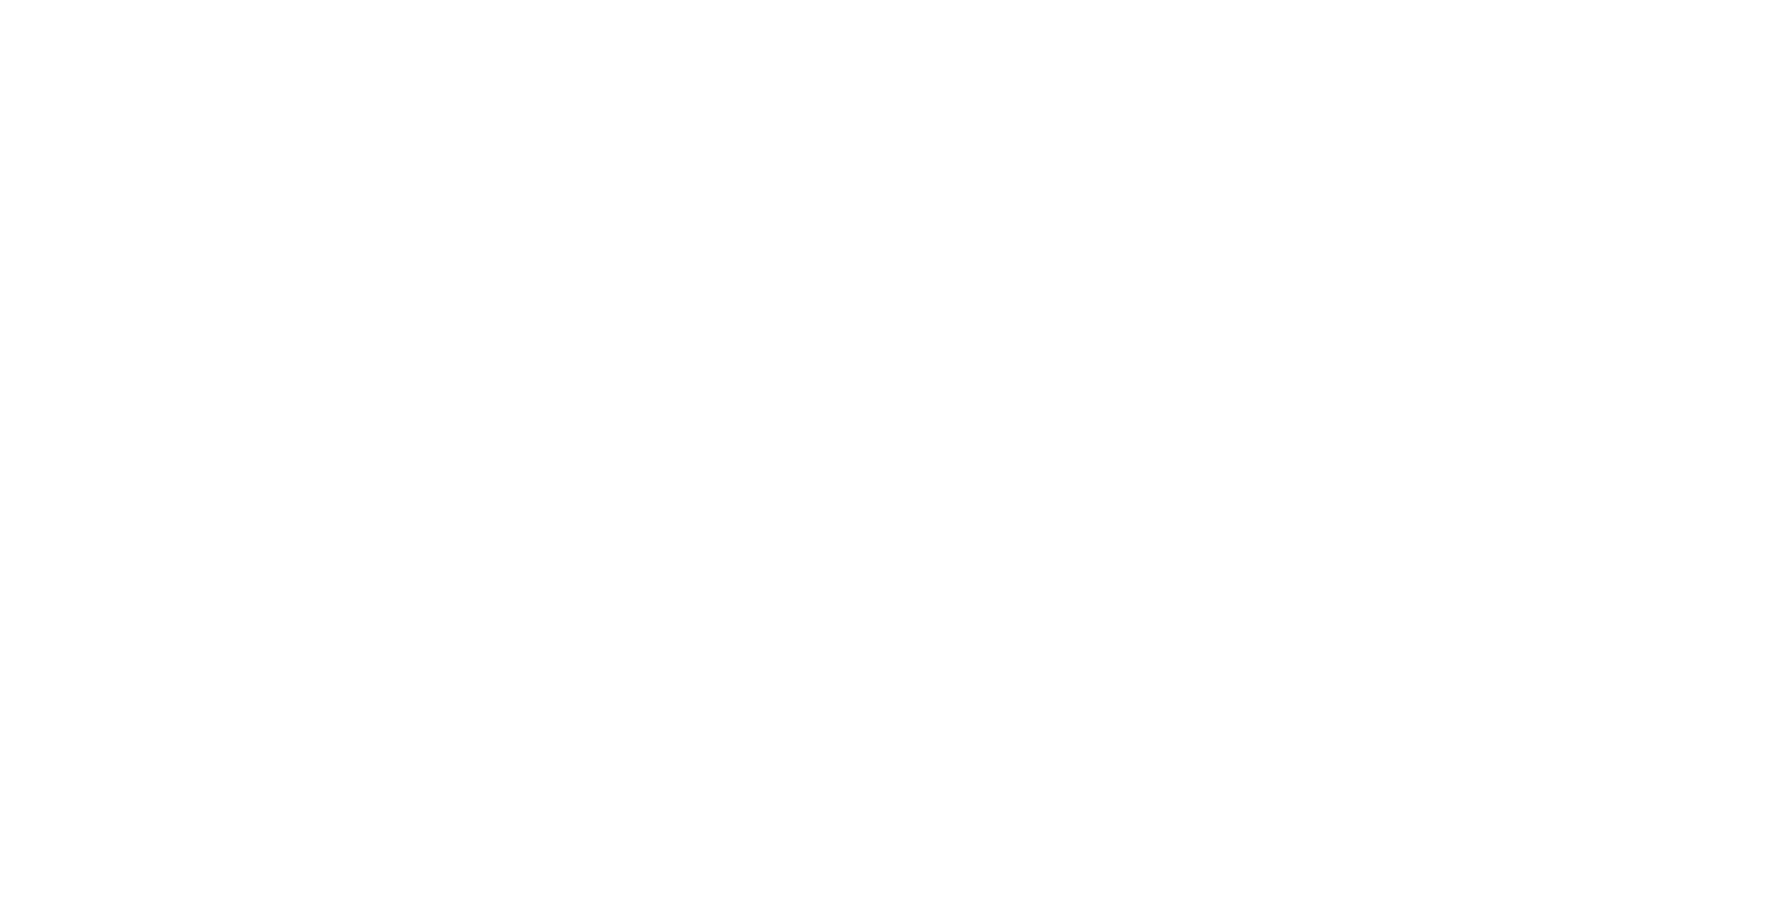 Country on the coast 2020